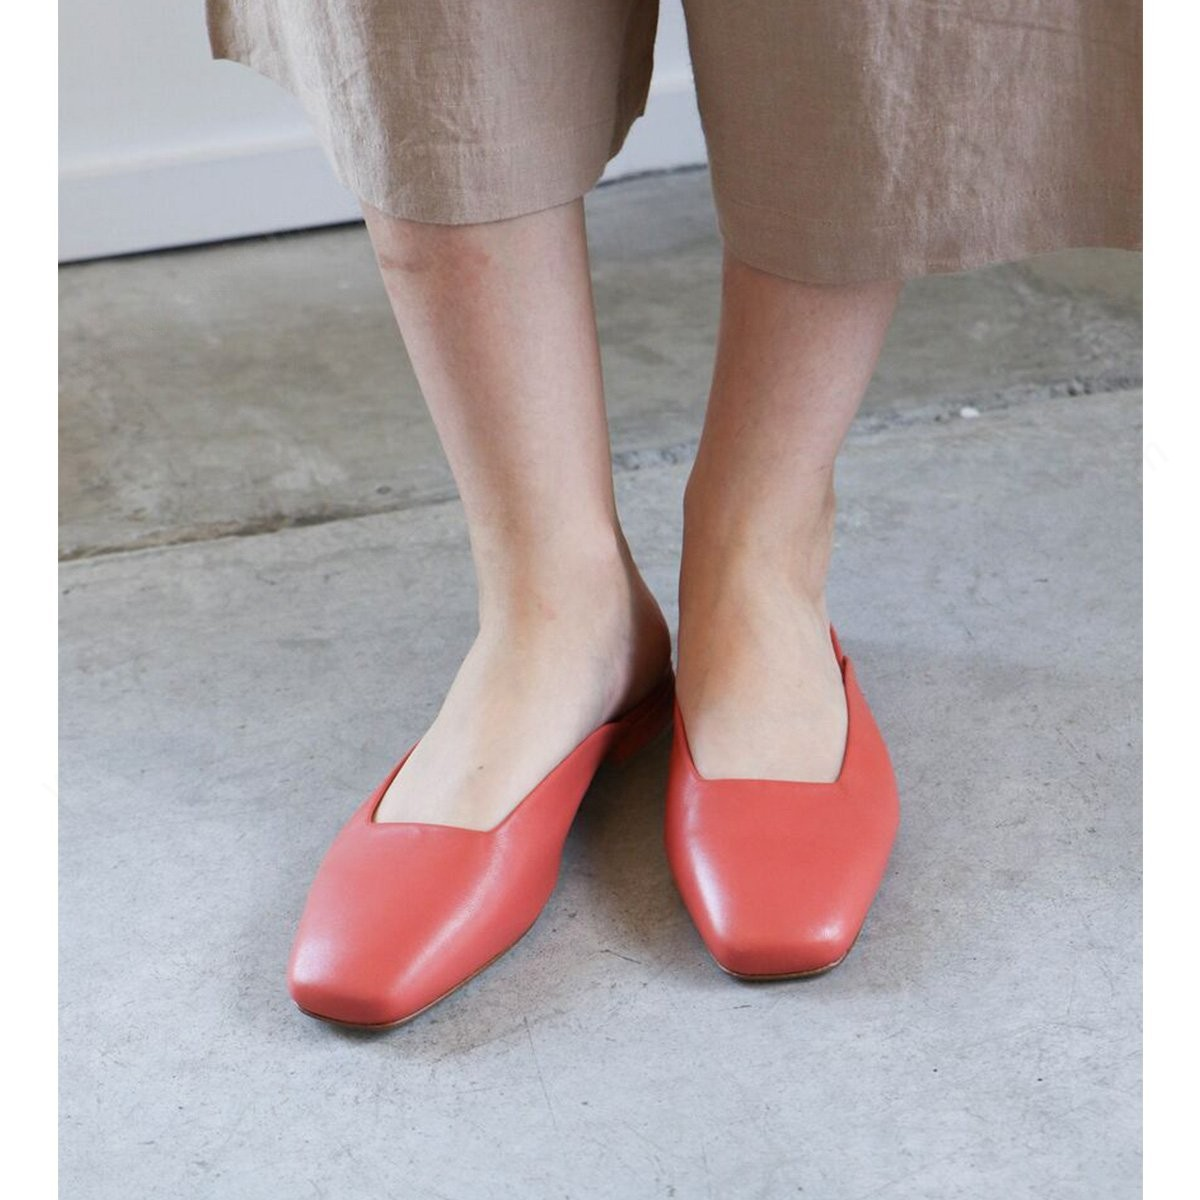 Womens's Loq Lucia Flats - Coral Shoe - Womens's Loq Lucia Flats - Coral Shoe